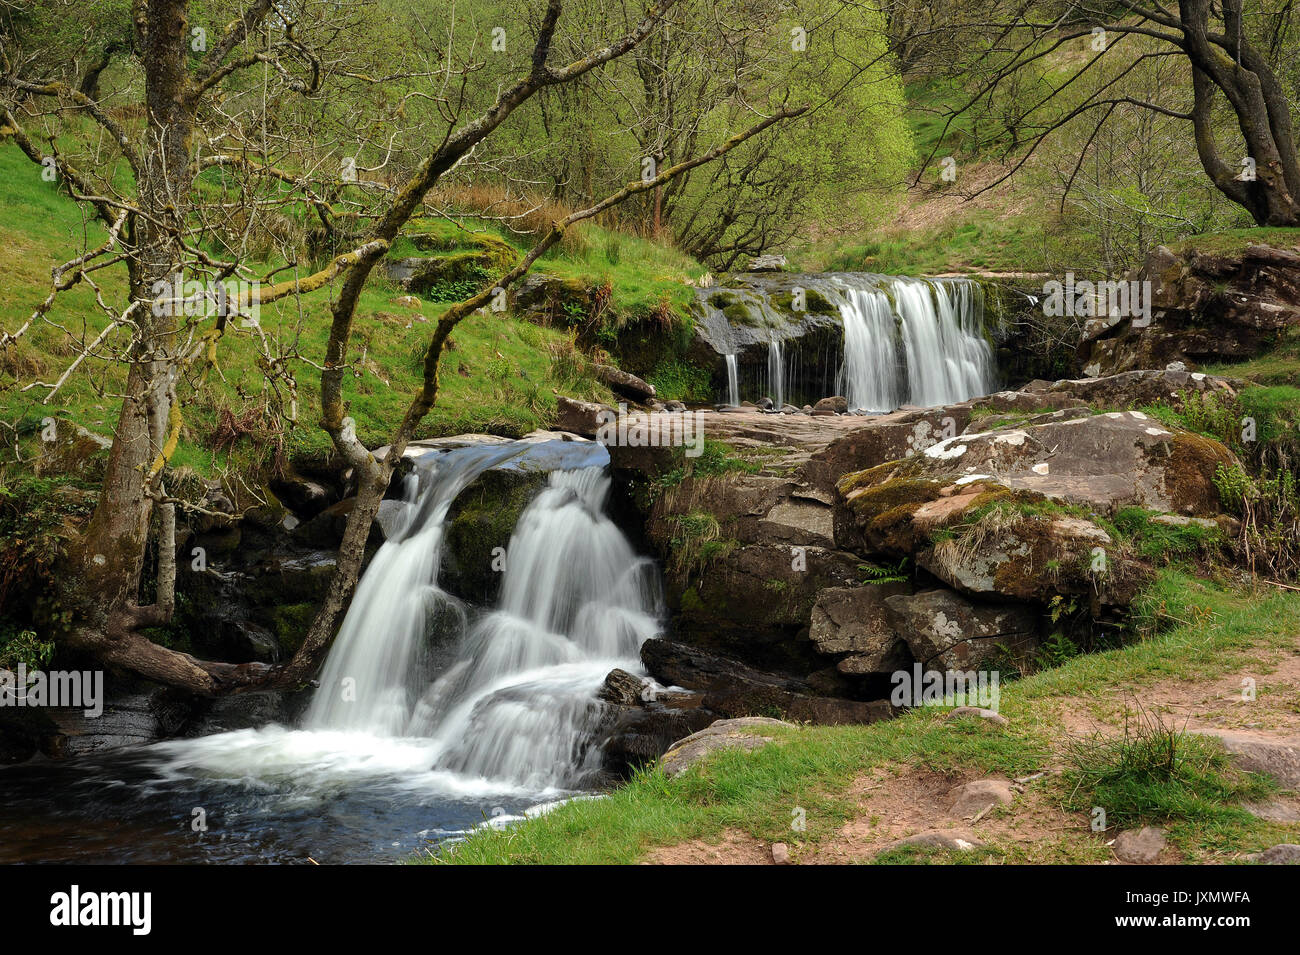 Two small waterfalls on the Afon Caerfanell, near its confluence with the Nant Bwrefwr. - Stock Image